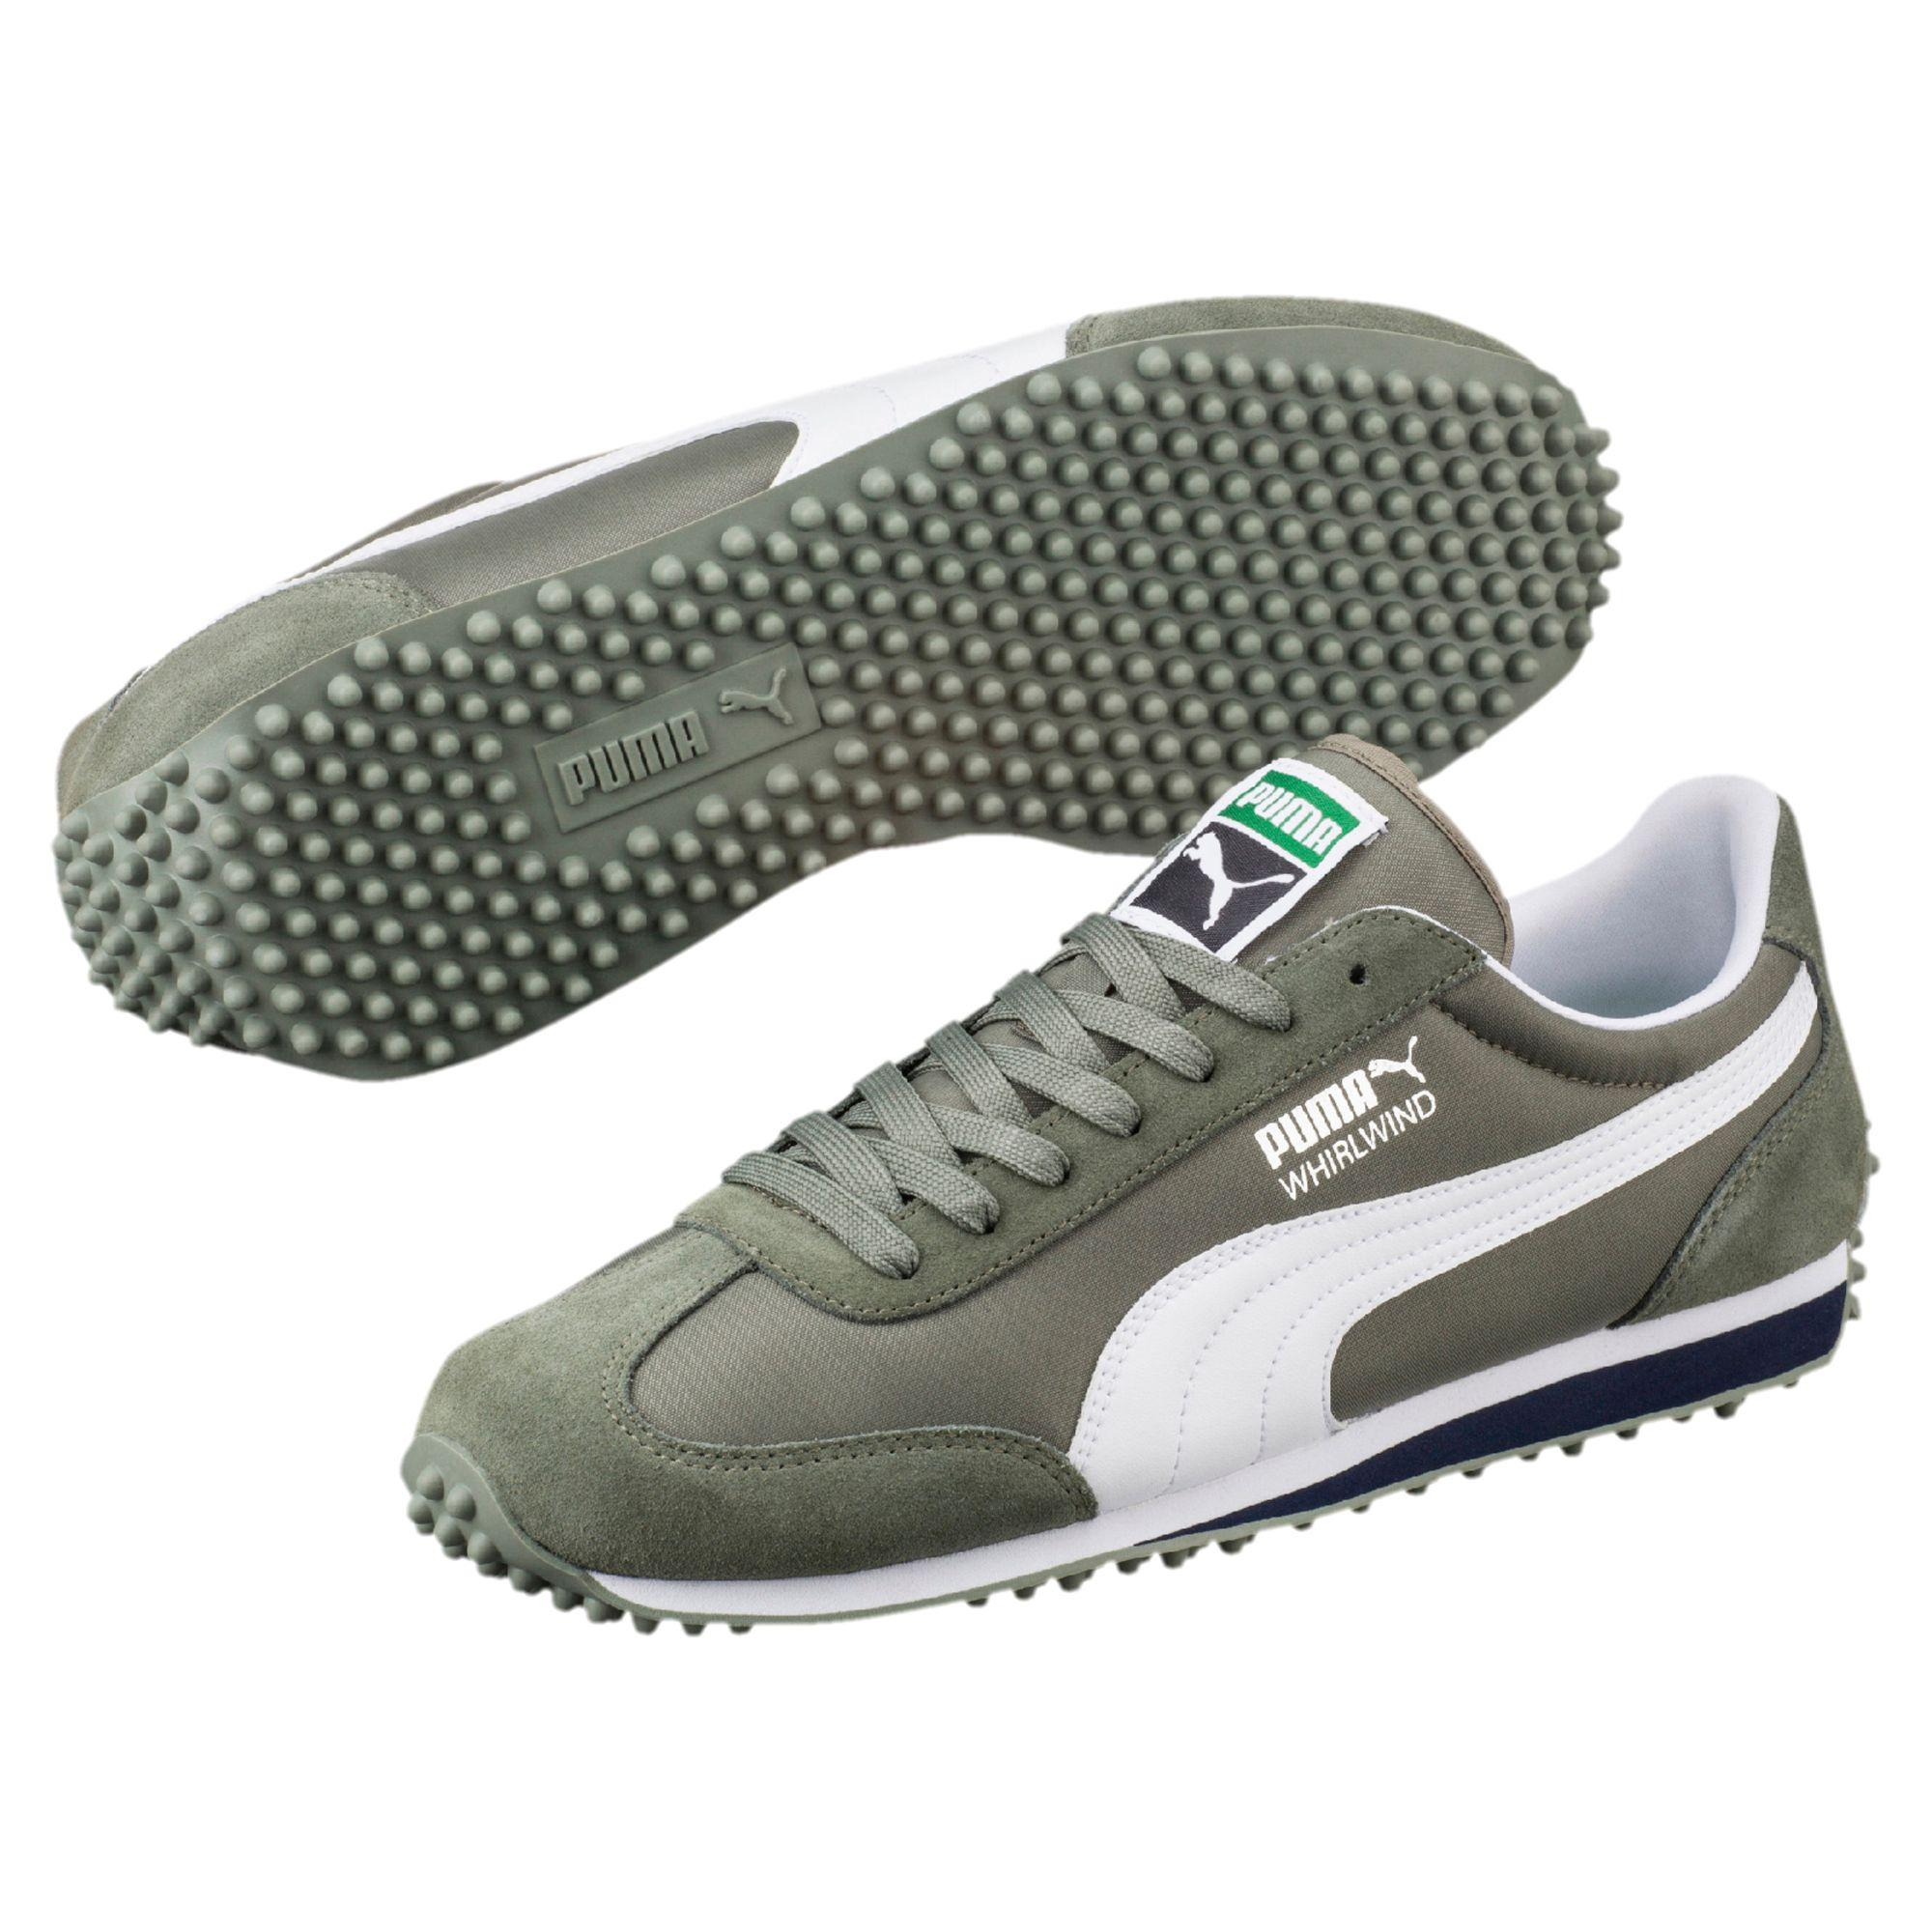 Lyst - Puma Whirlwind Classic Men s Sneakers in Green for Men d97ba8226